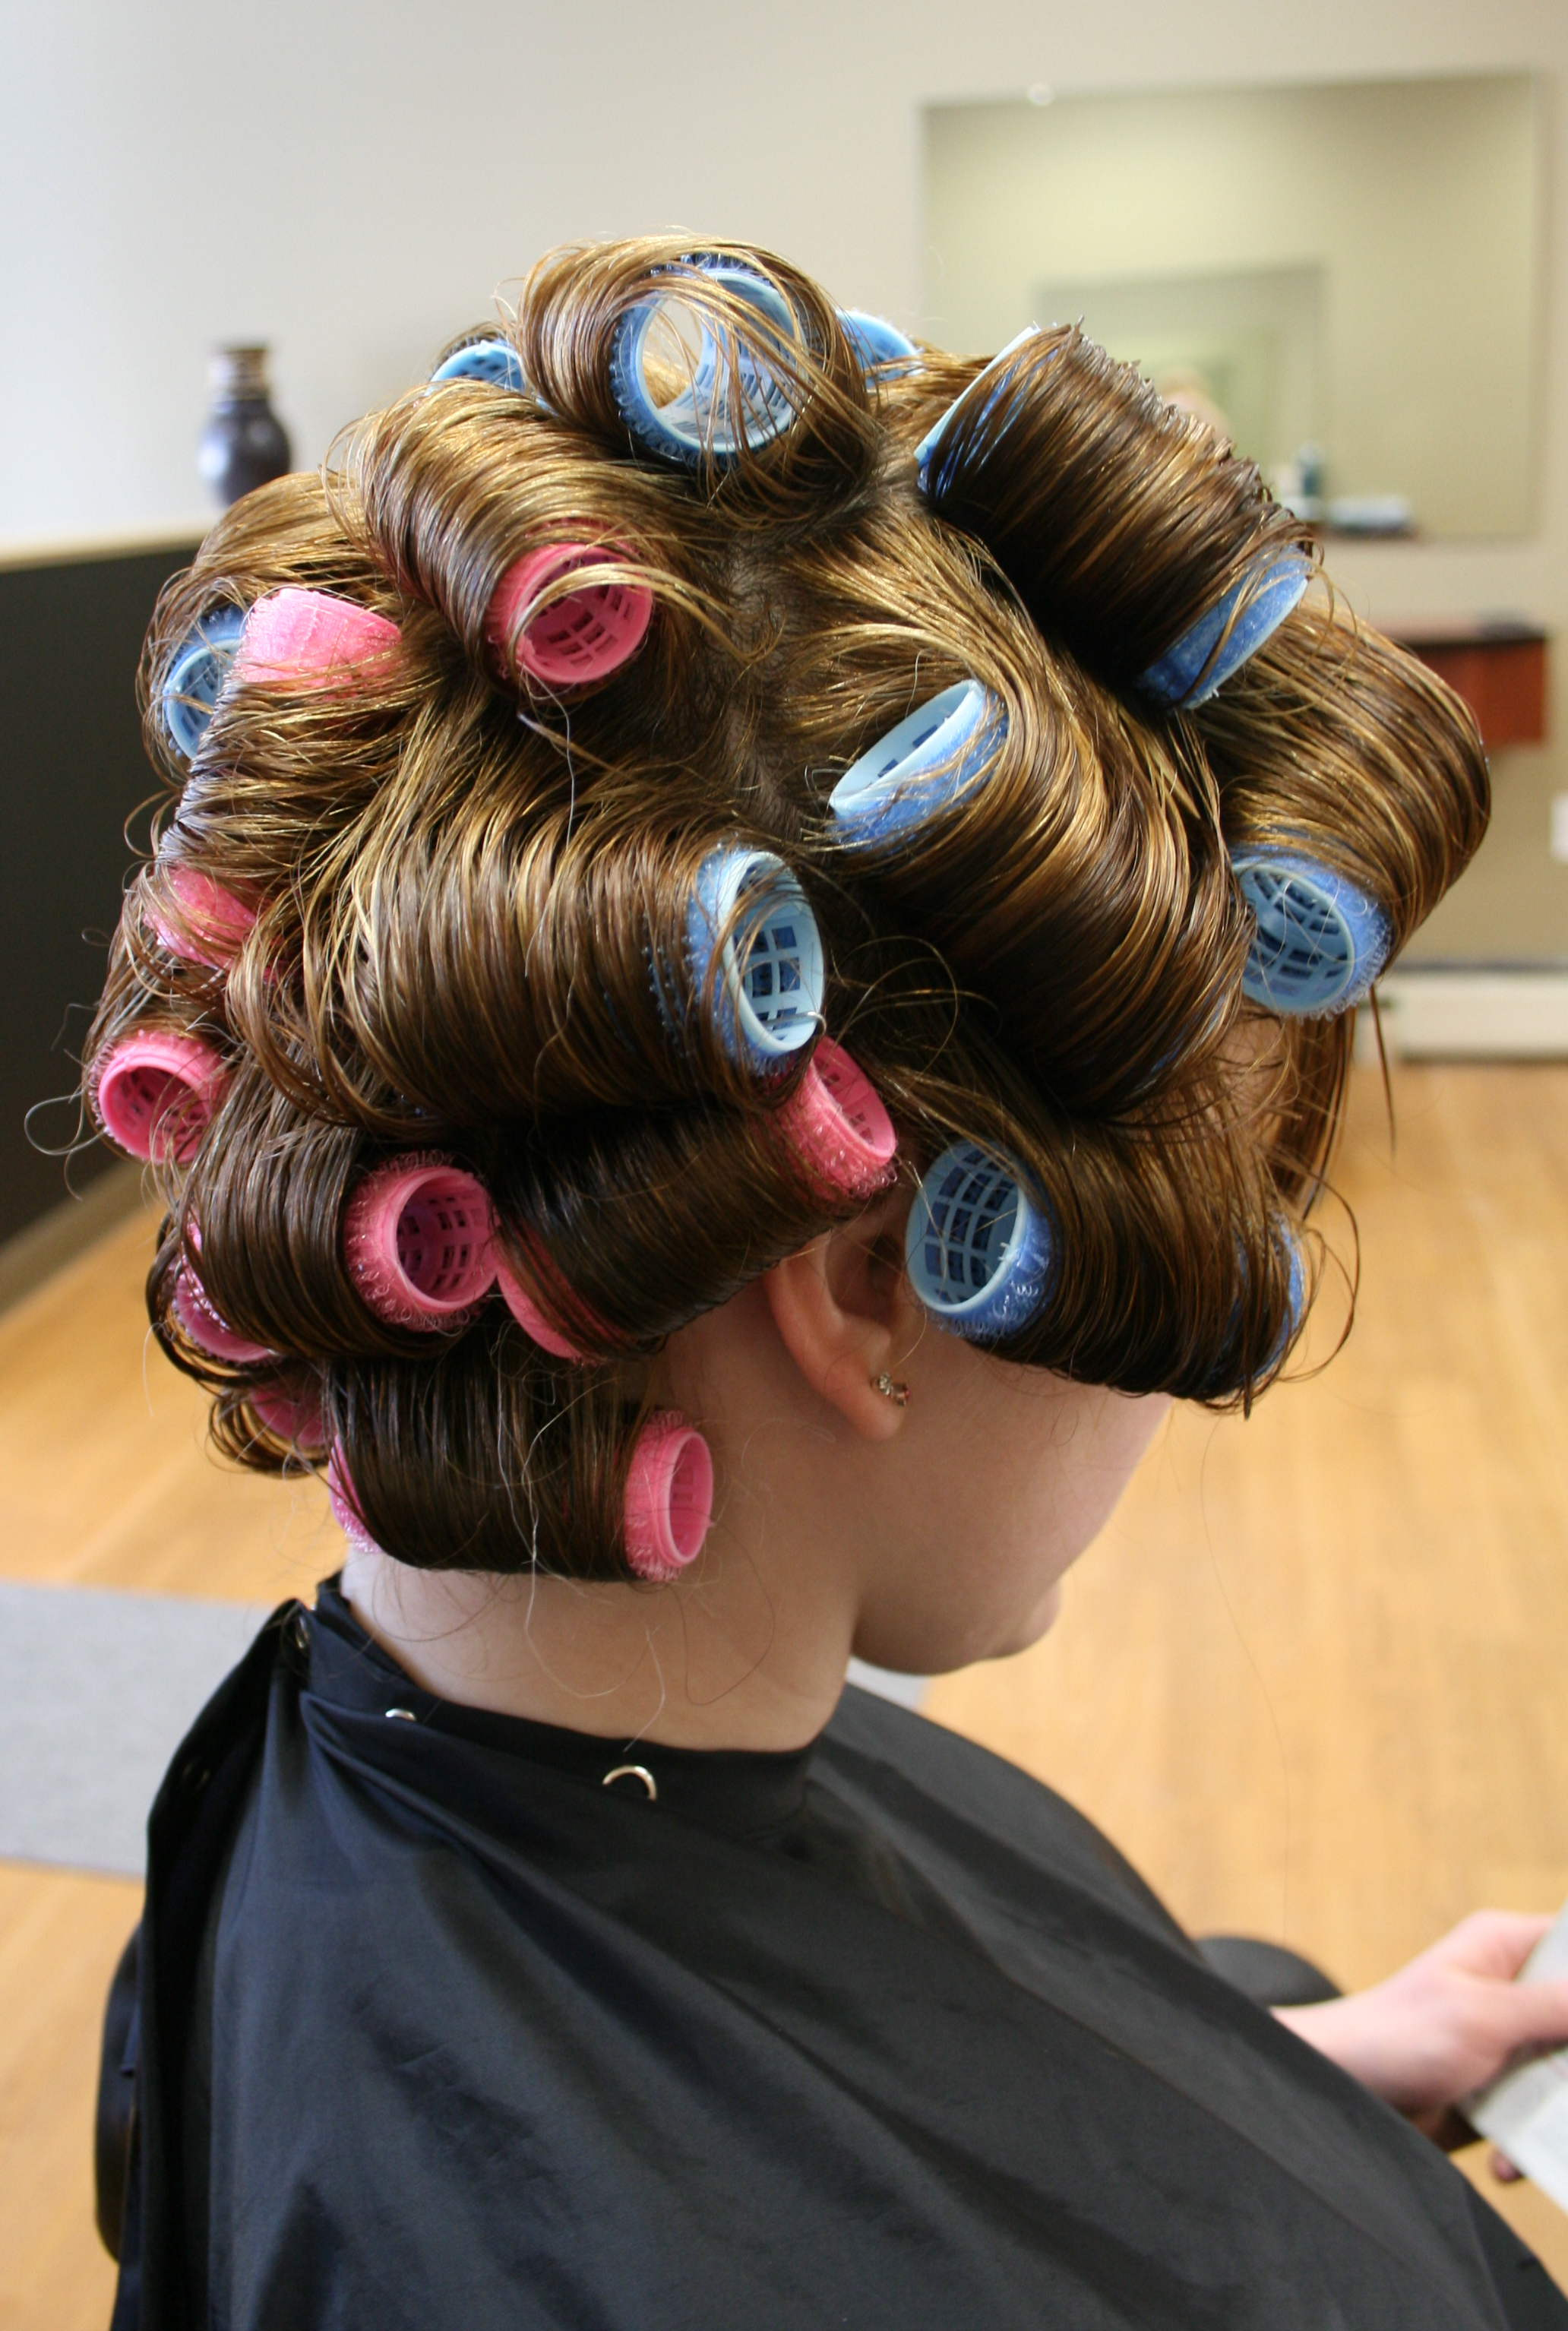 How To Use Velcro Rollers On Long Hair Ehow Uk